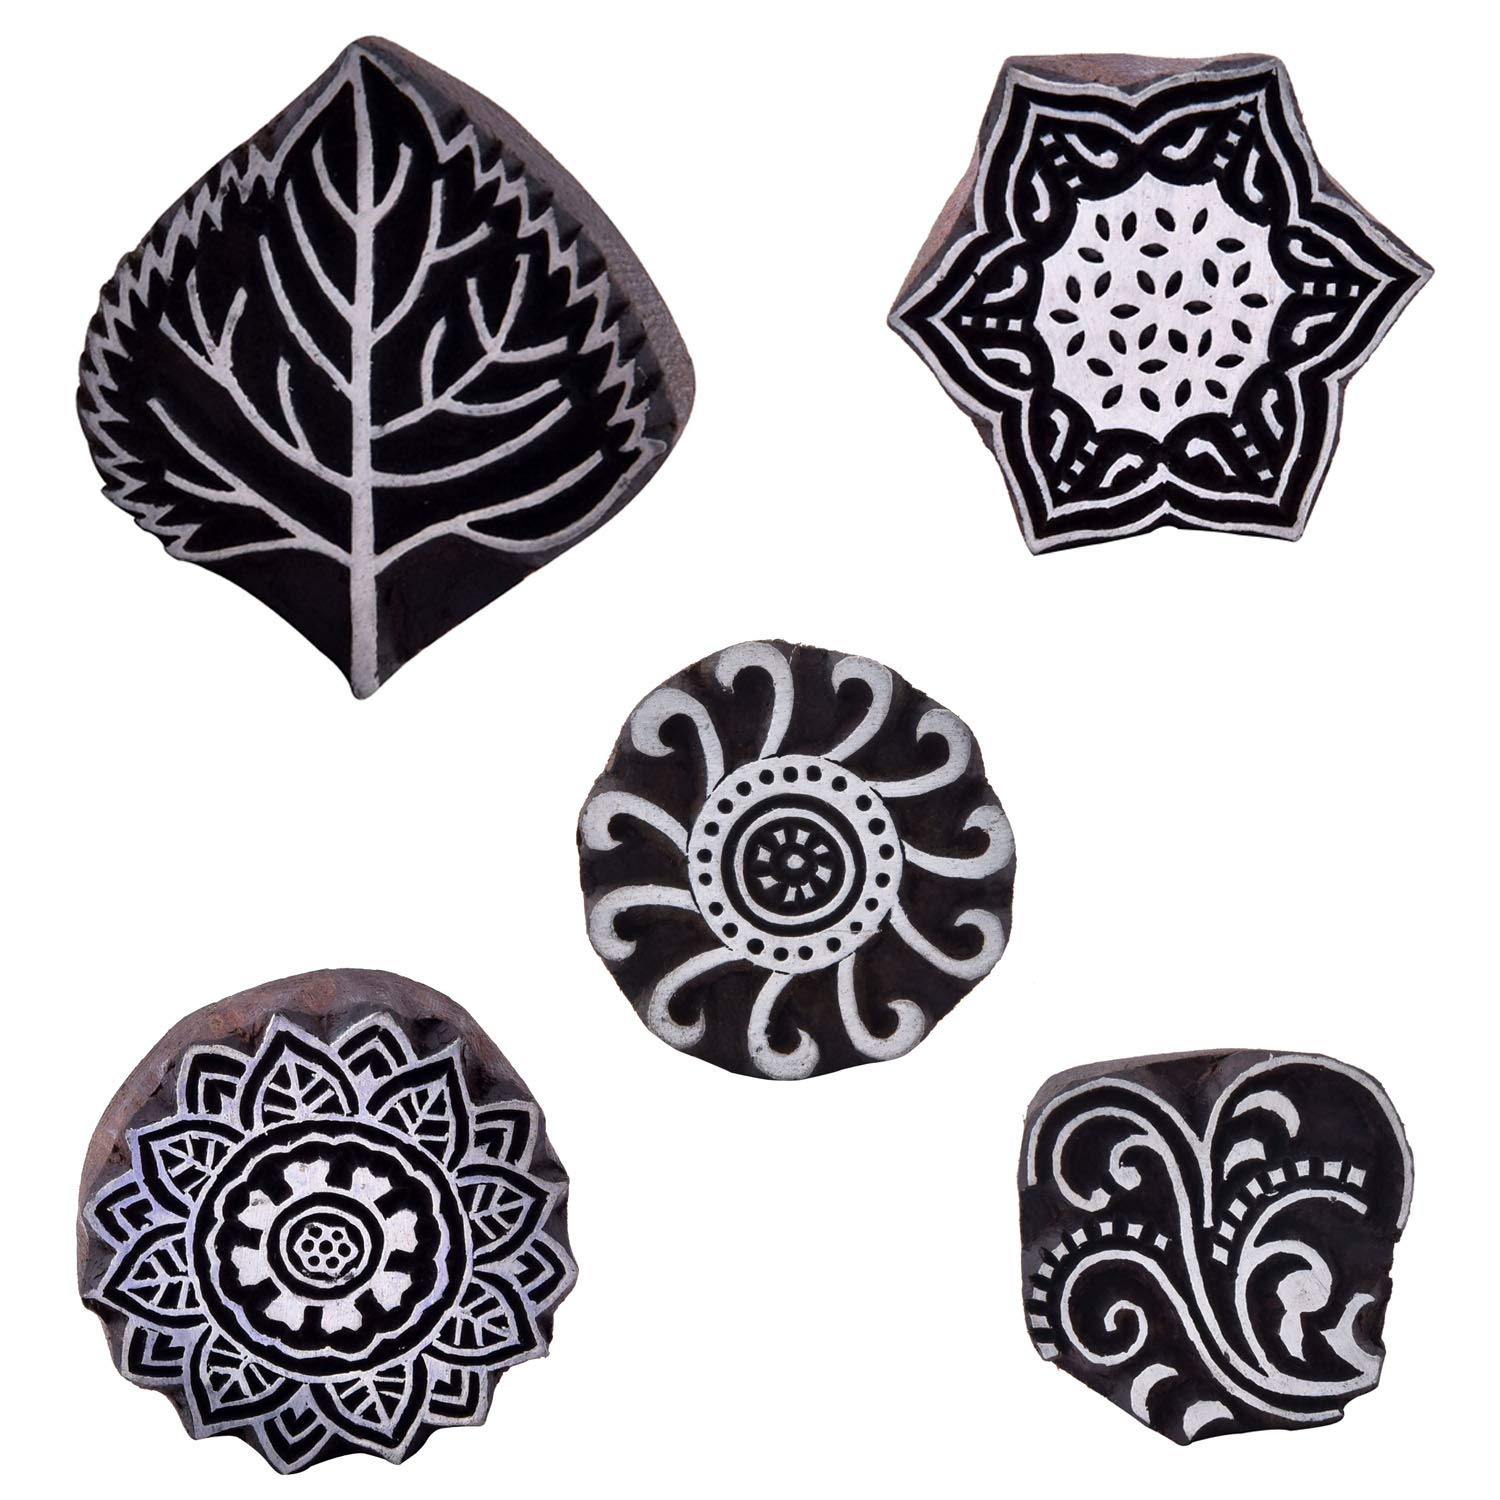 Printing Block Wooden Textile Stamp Leaf & Floral Pottery Fabric Clay Project Heena Tattoo Craft Blocks Pack of 5 by CraftyArt